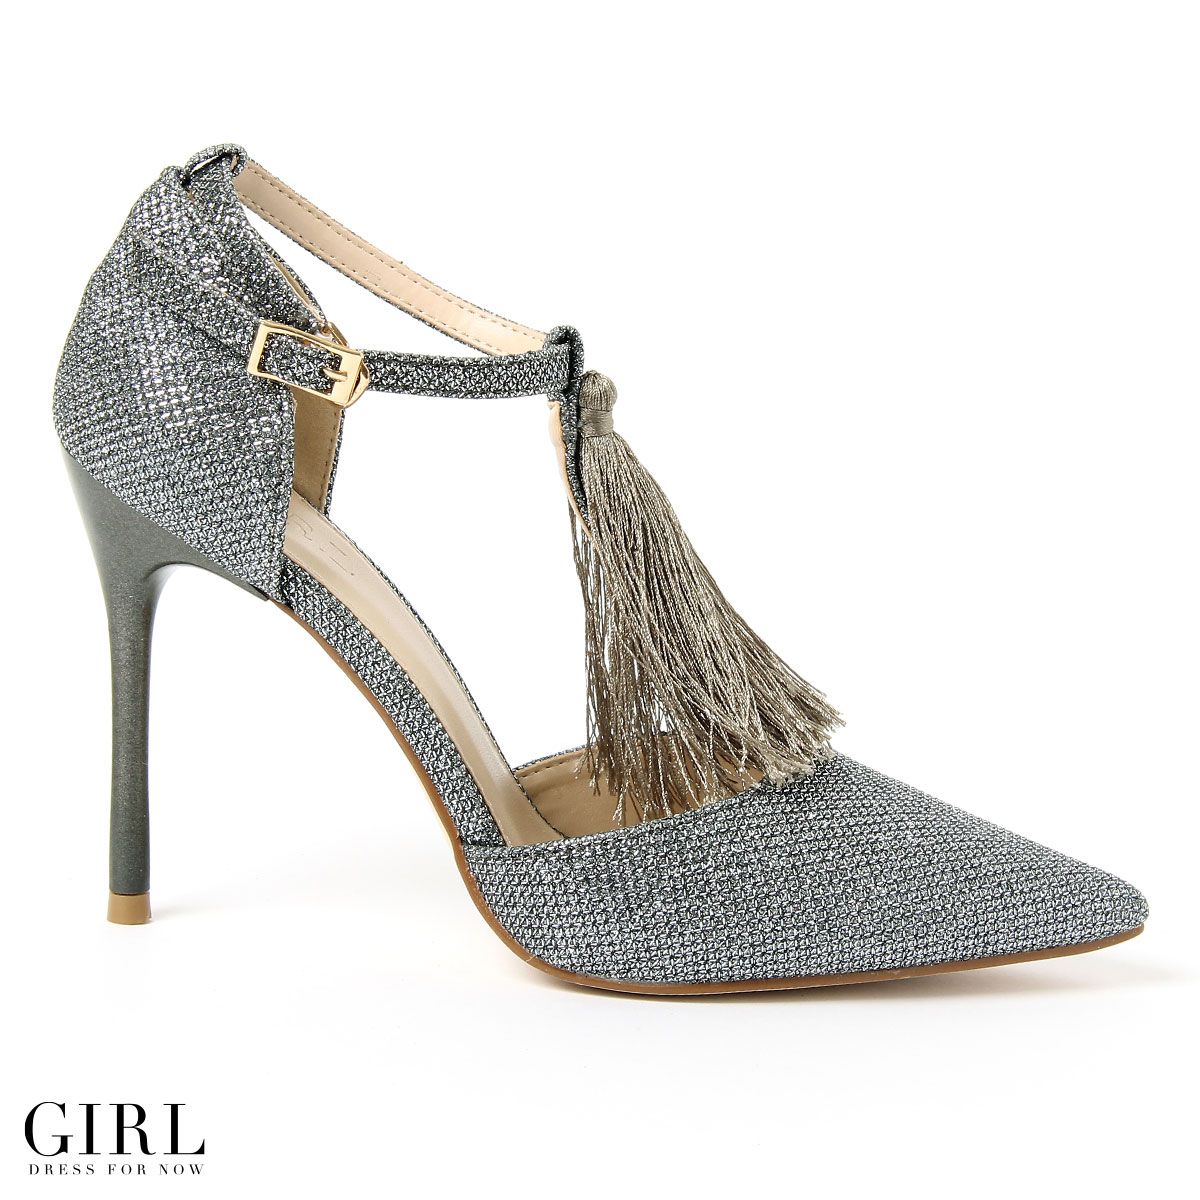 Free Shipping Shoes Pumps 6 000 Yen Tax In Wedding Party Parties Dinner Casual